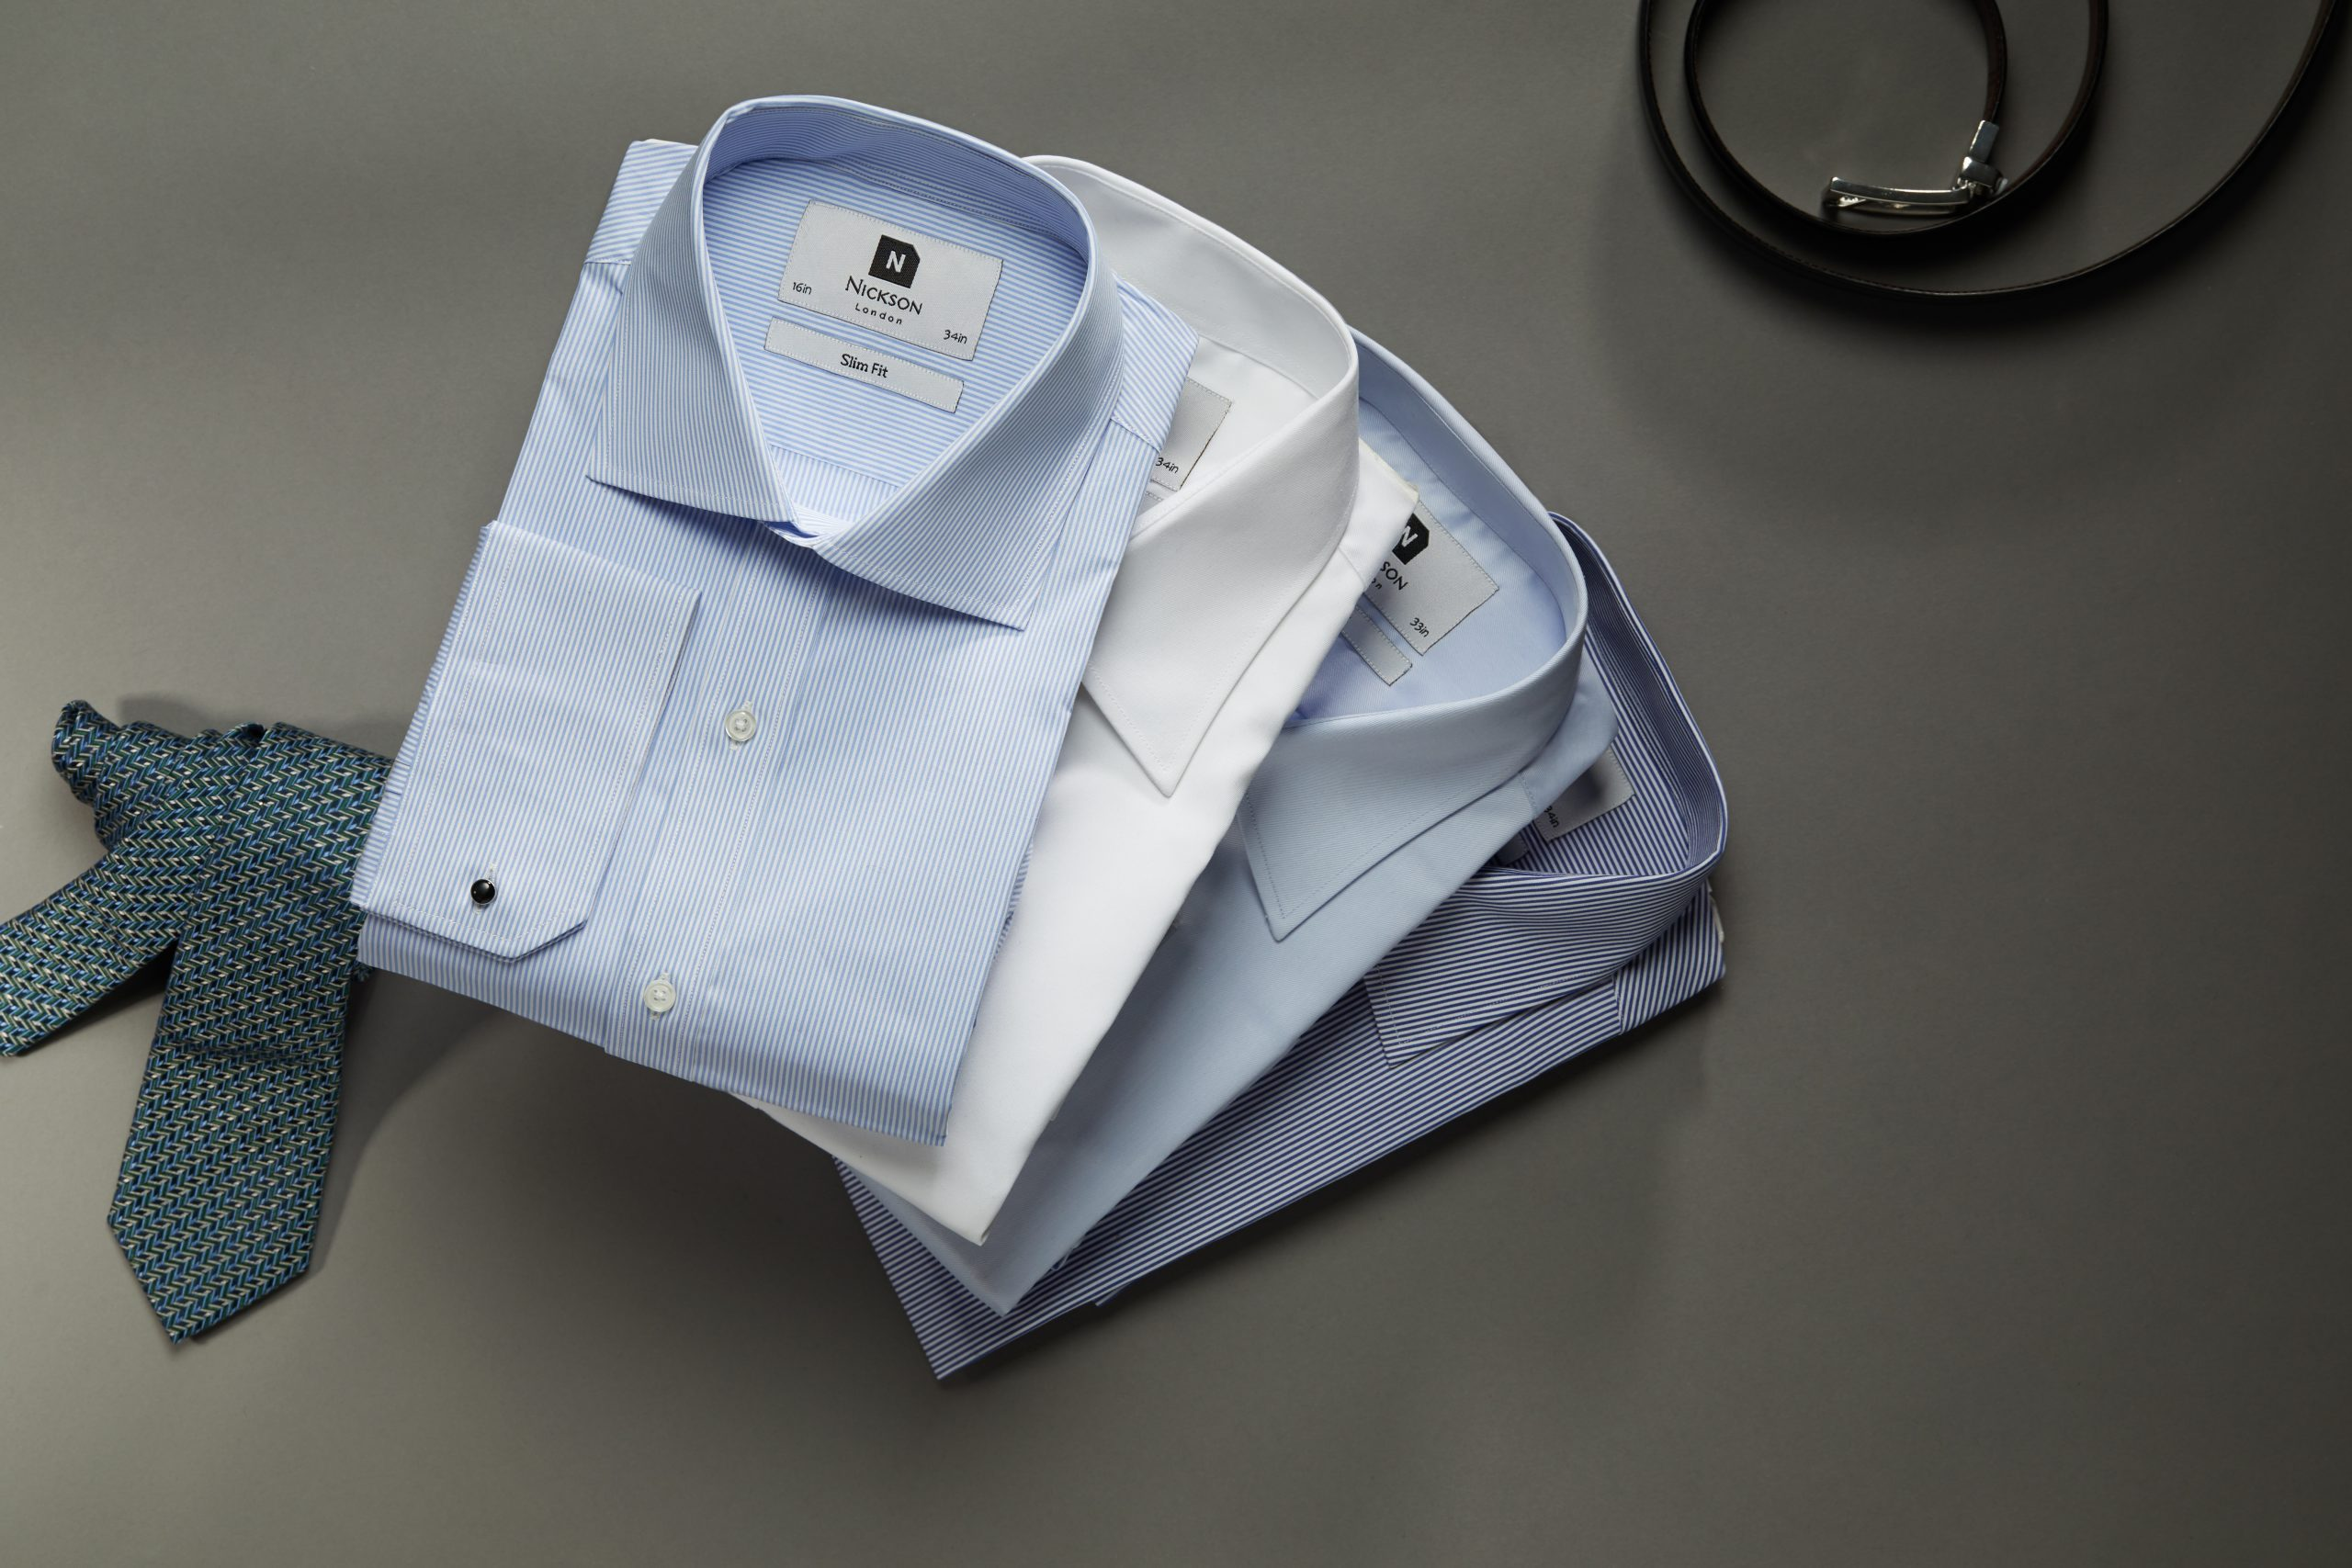 Men's dress shirts, men's tie, men's belt - fanned with white shirt and blue shirts